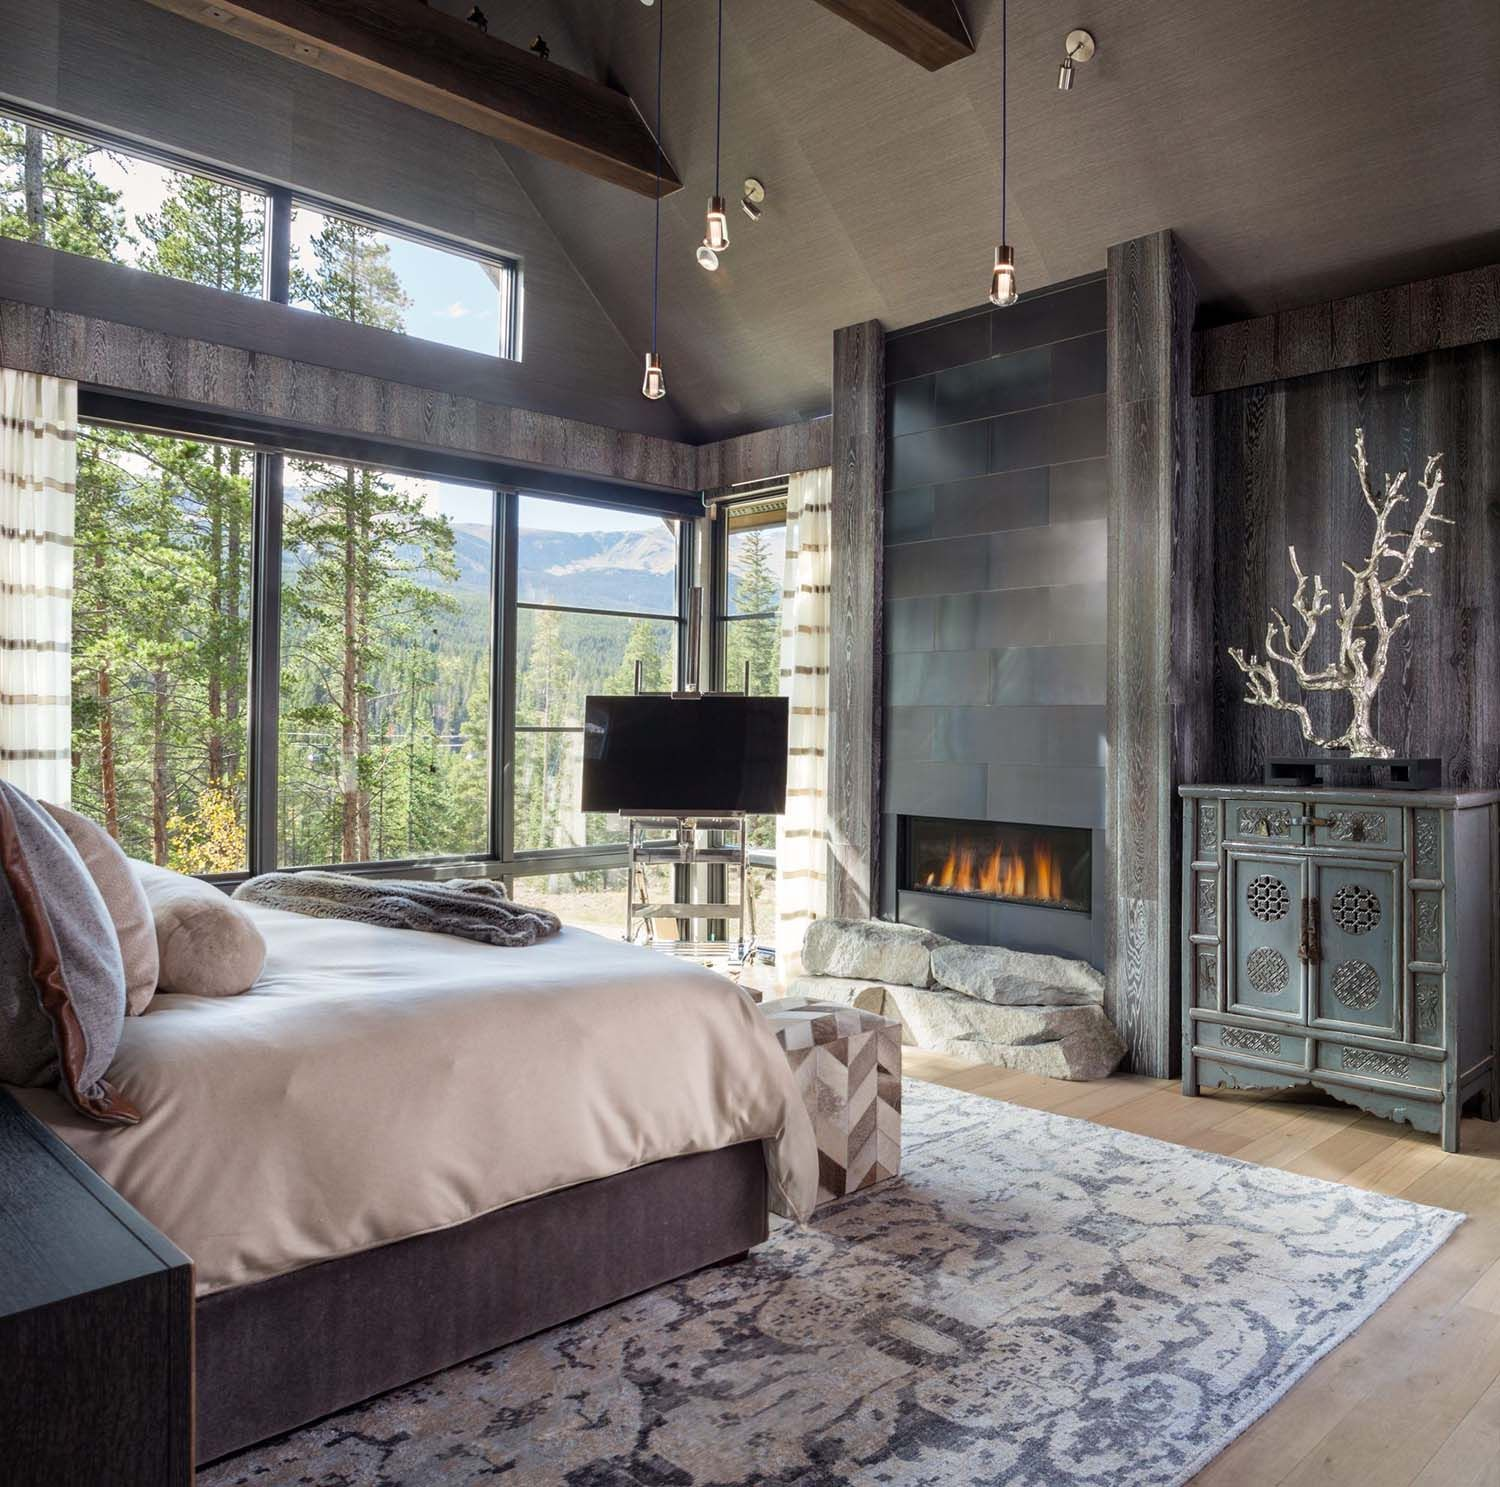 Mountain Chalet In Colorado Showcases Rustic Contemporary Styling